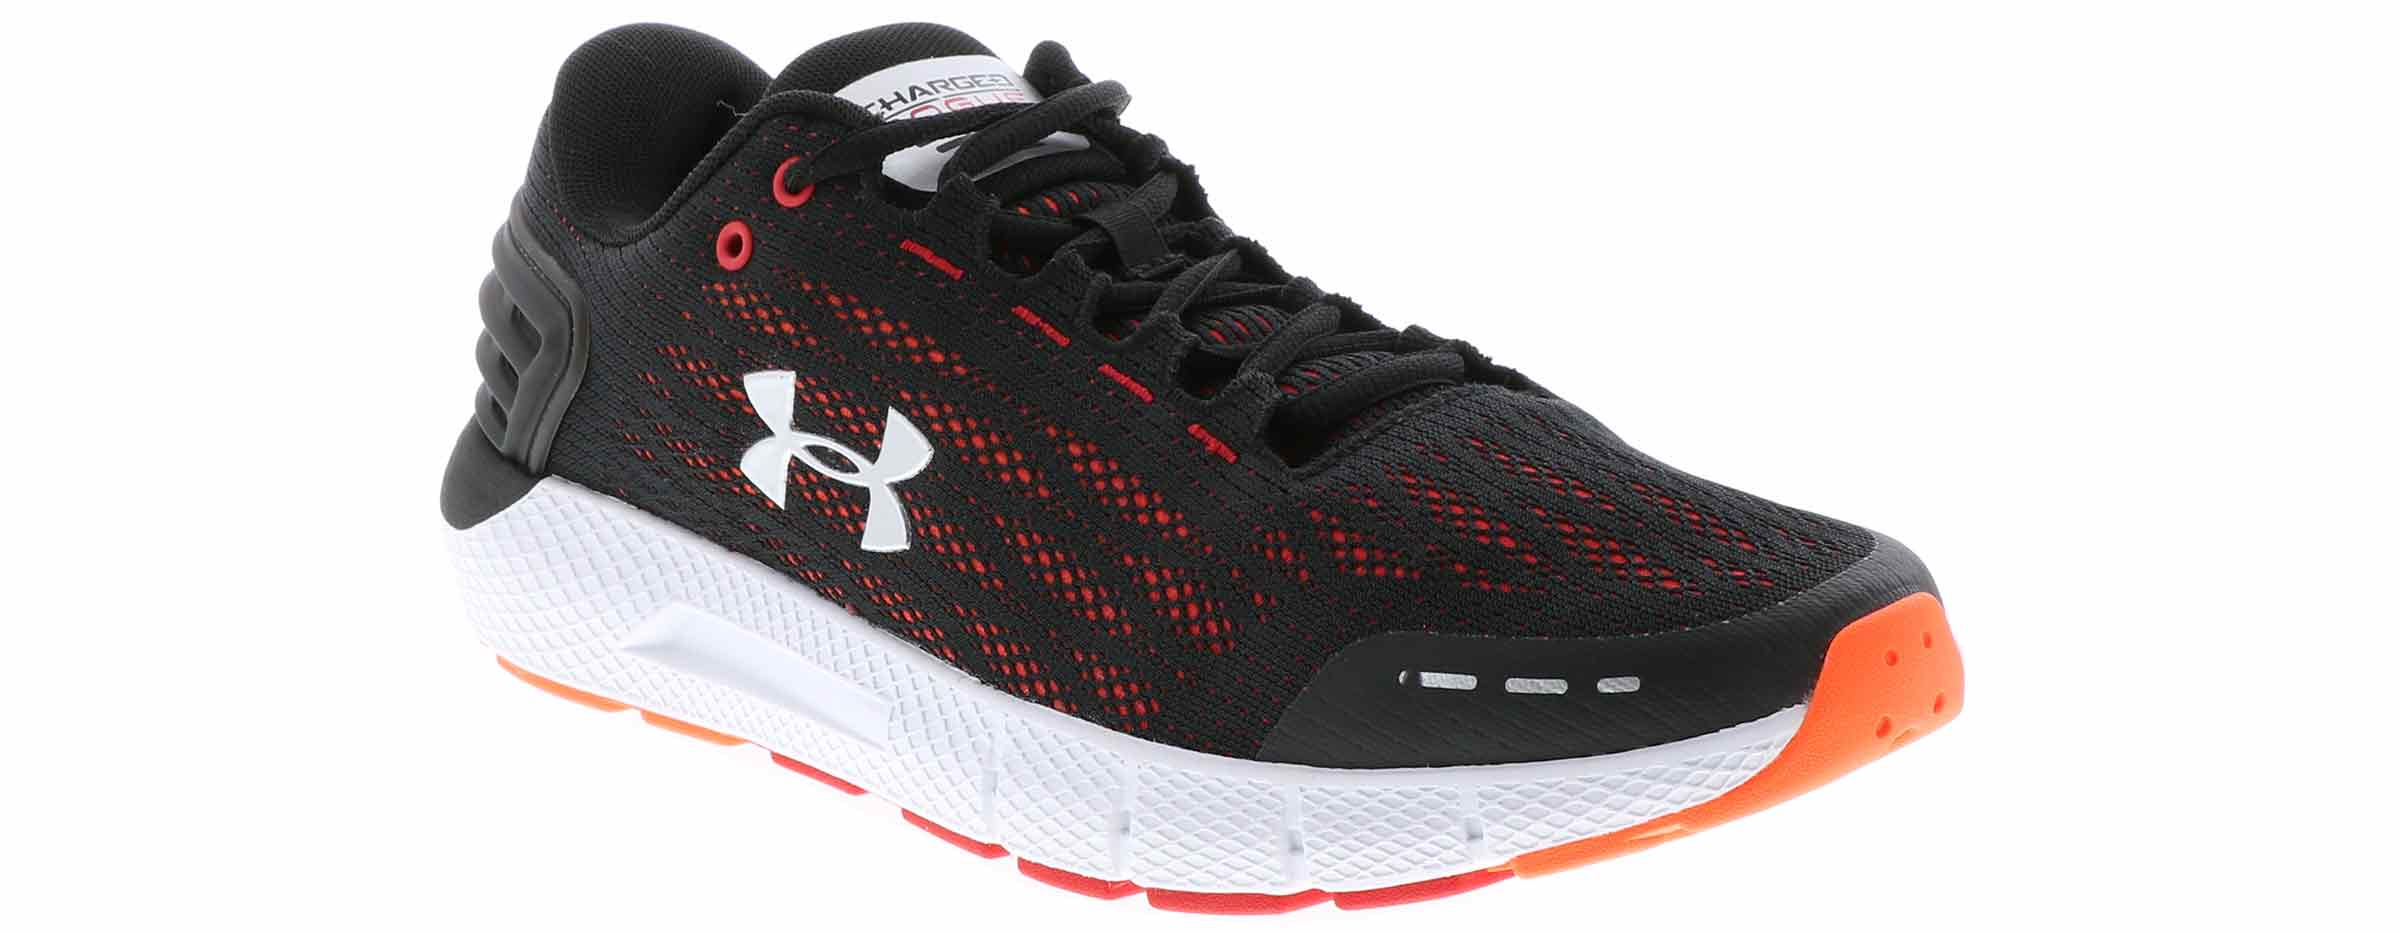 Mens Under Armour Shoes CHARGED ROGUE RUNNING SHOES 3021225 NEW